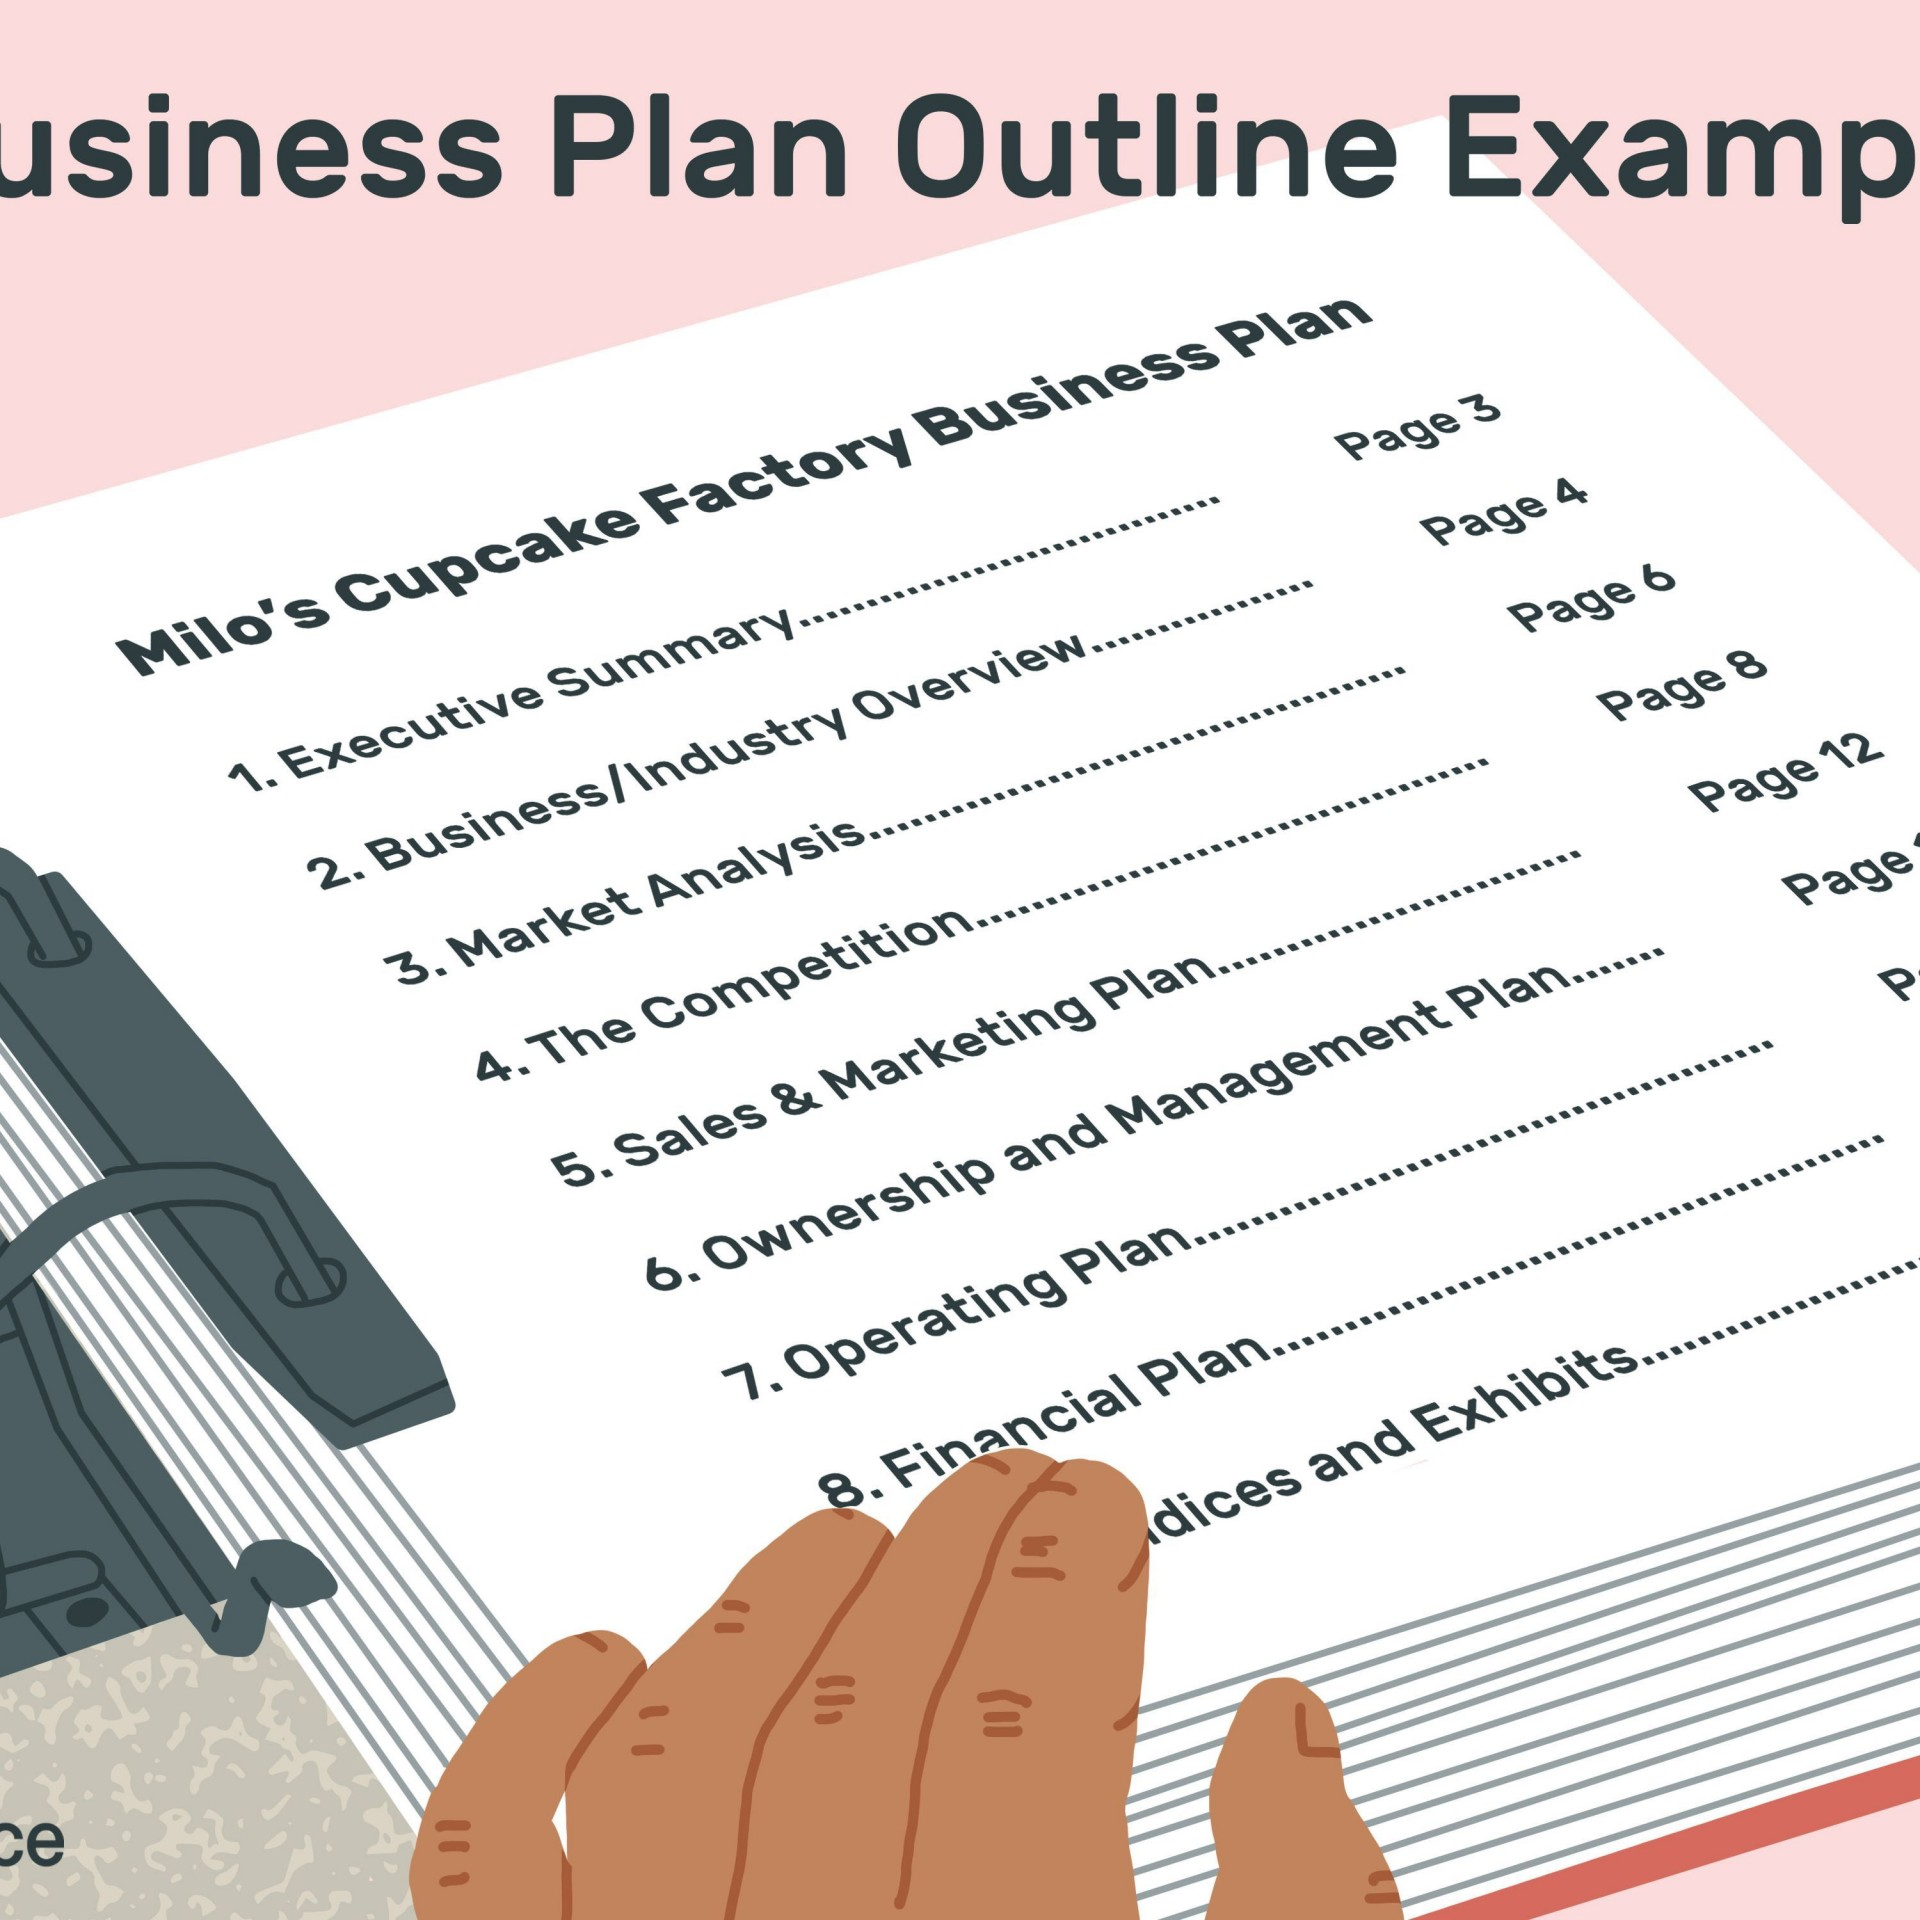 004 Imposing Busines Plan Format Word Doc High Definition  Template Free Download Example Document1920